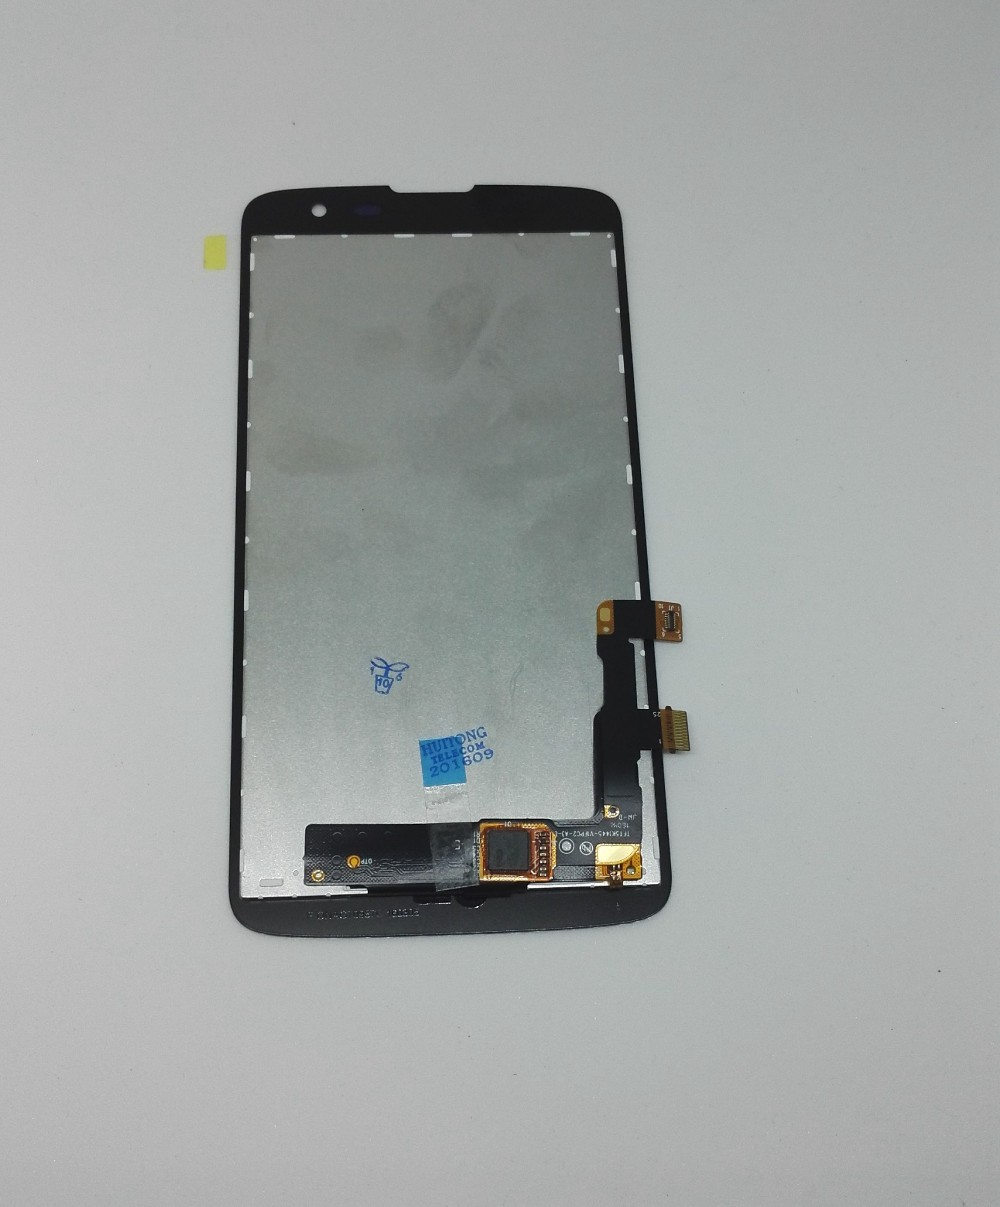 x210ds lcd back